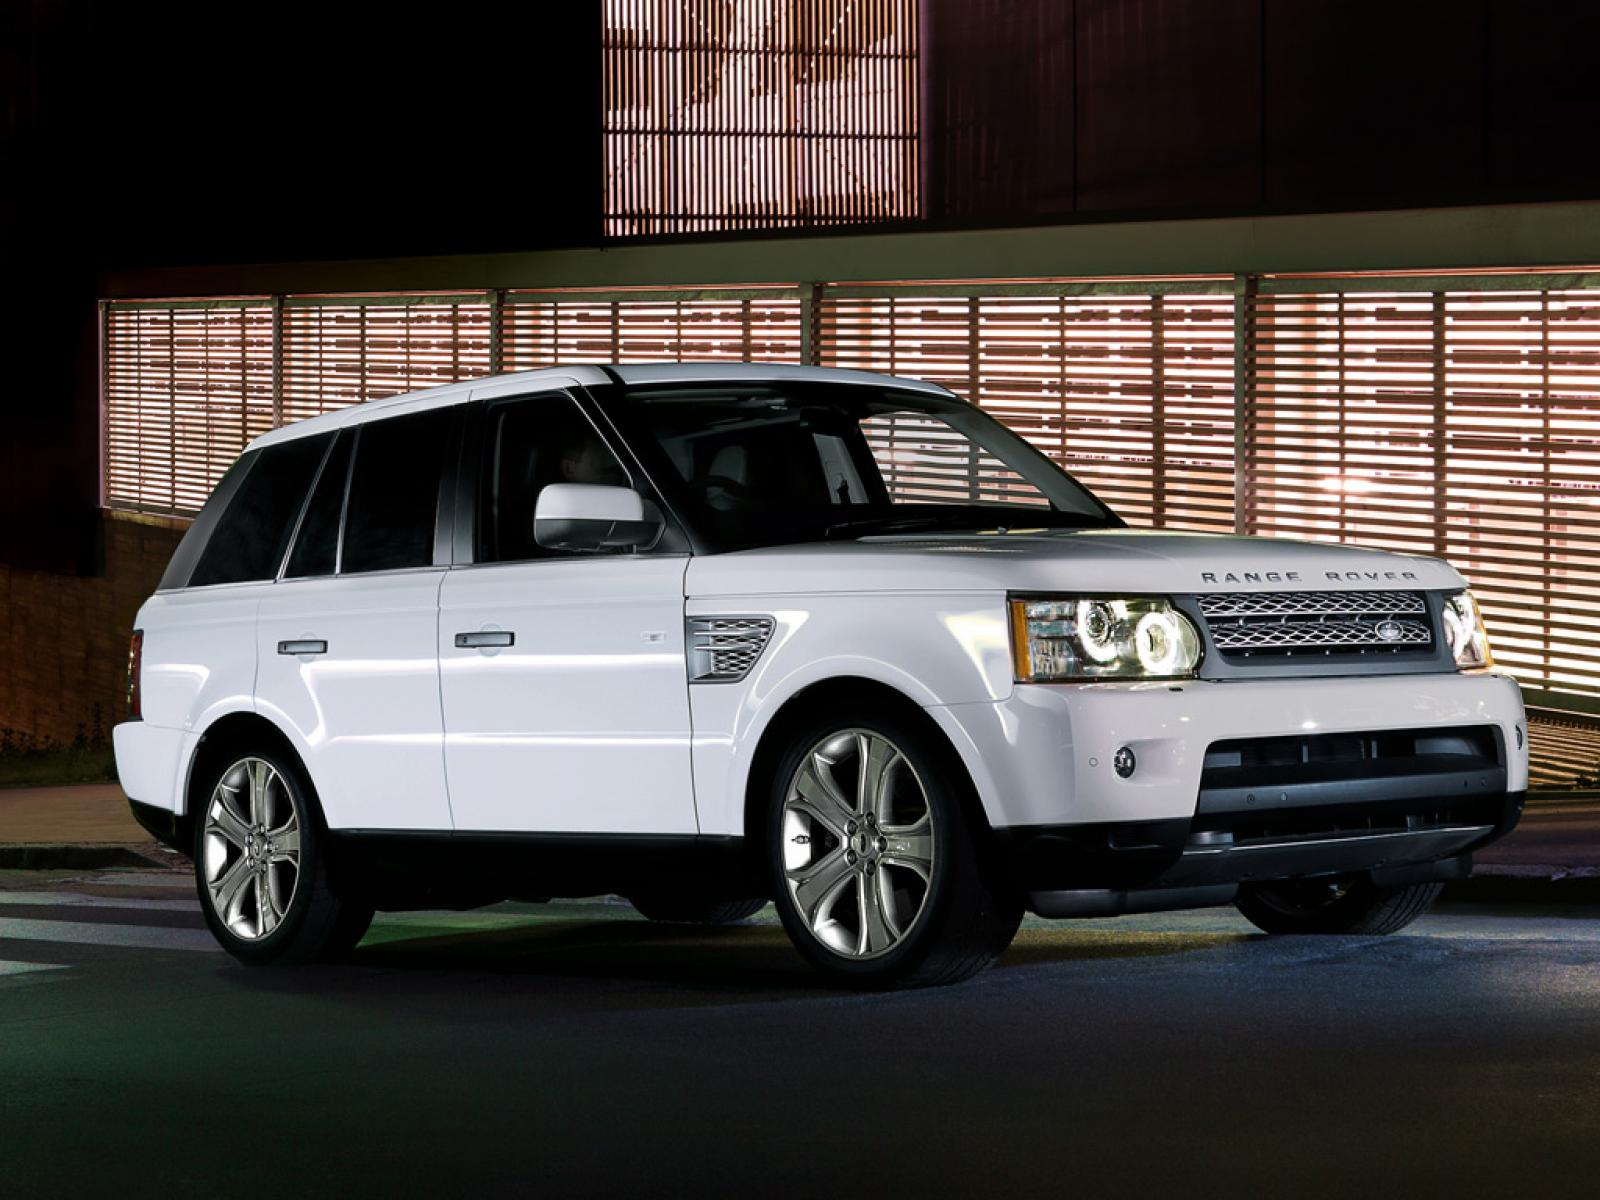 2009 Land Rover Range Rover Sport Information and photos